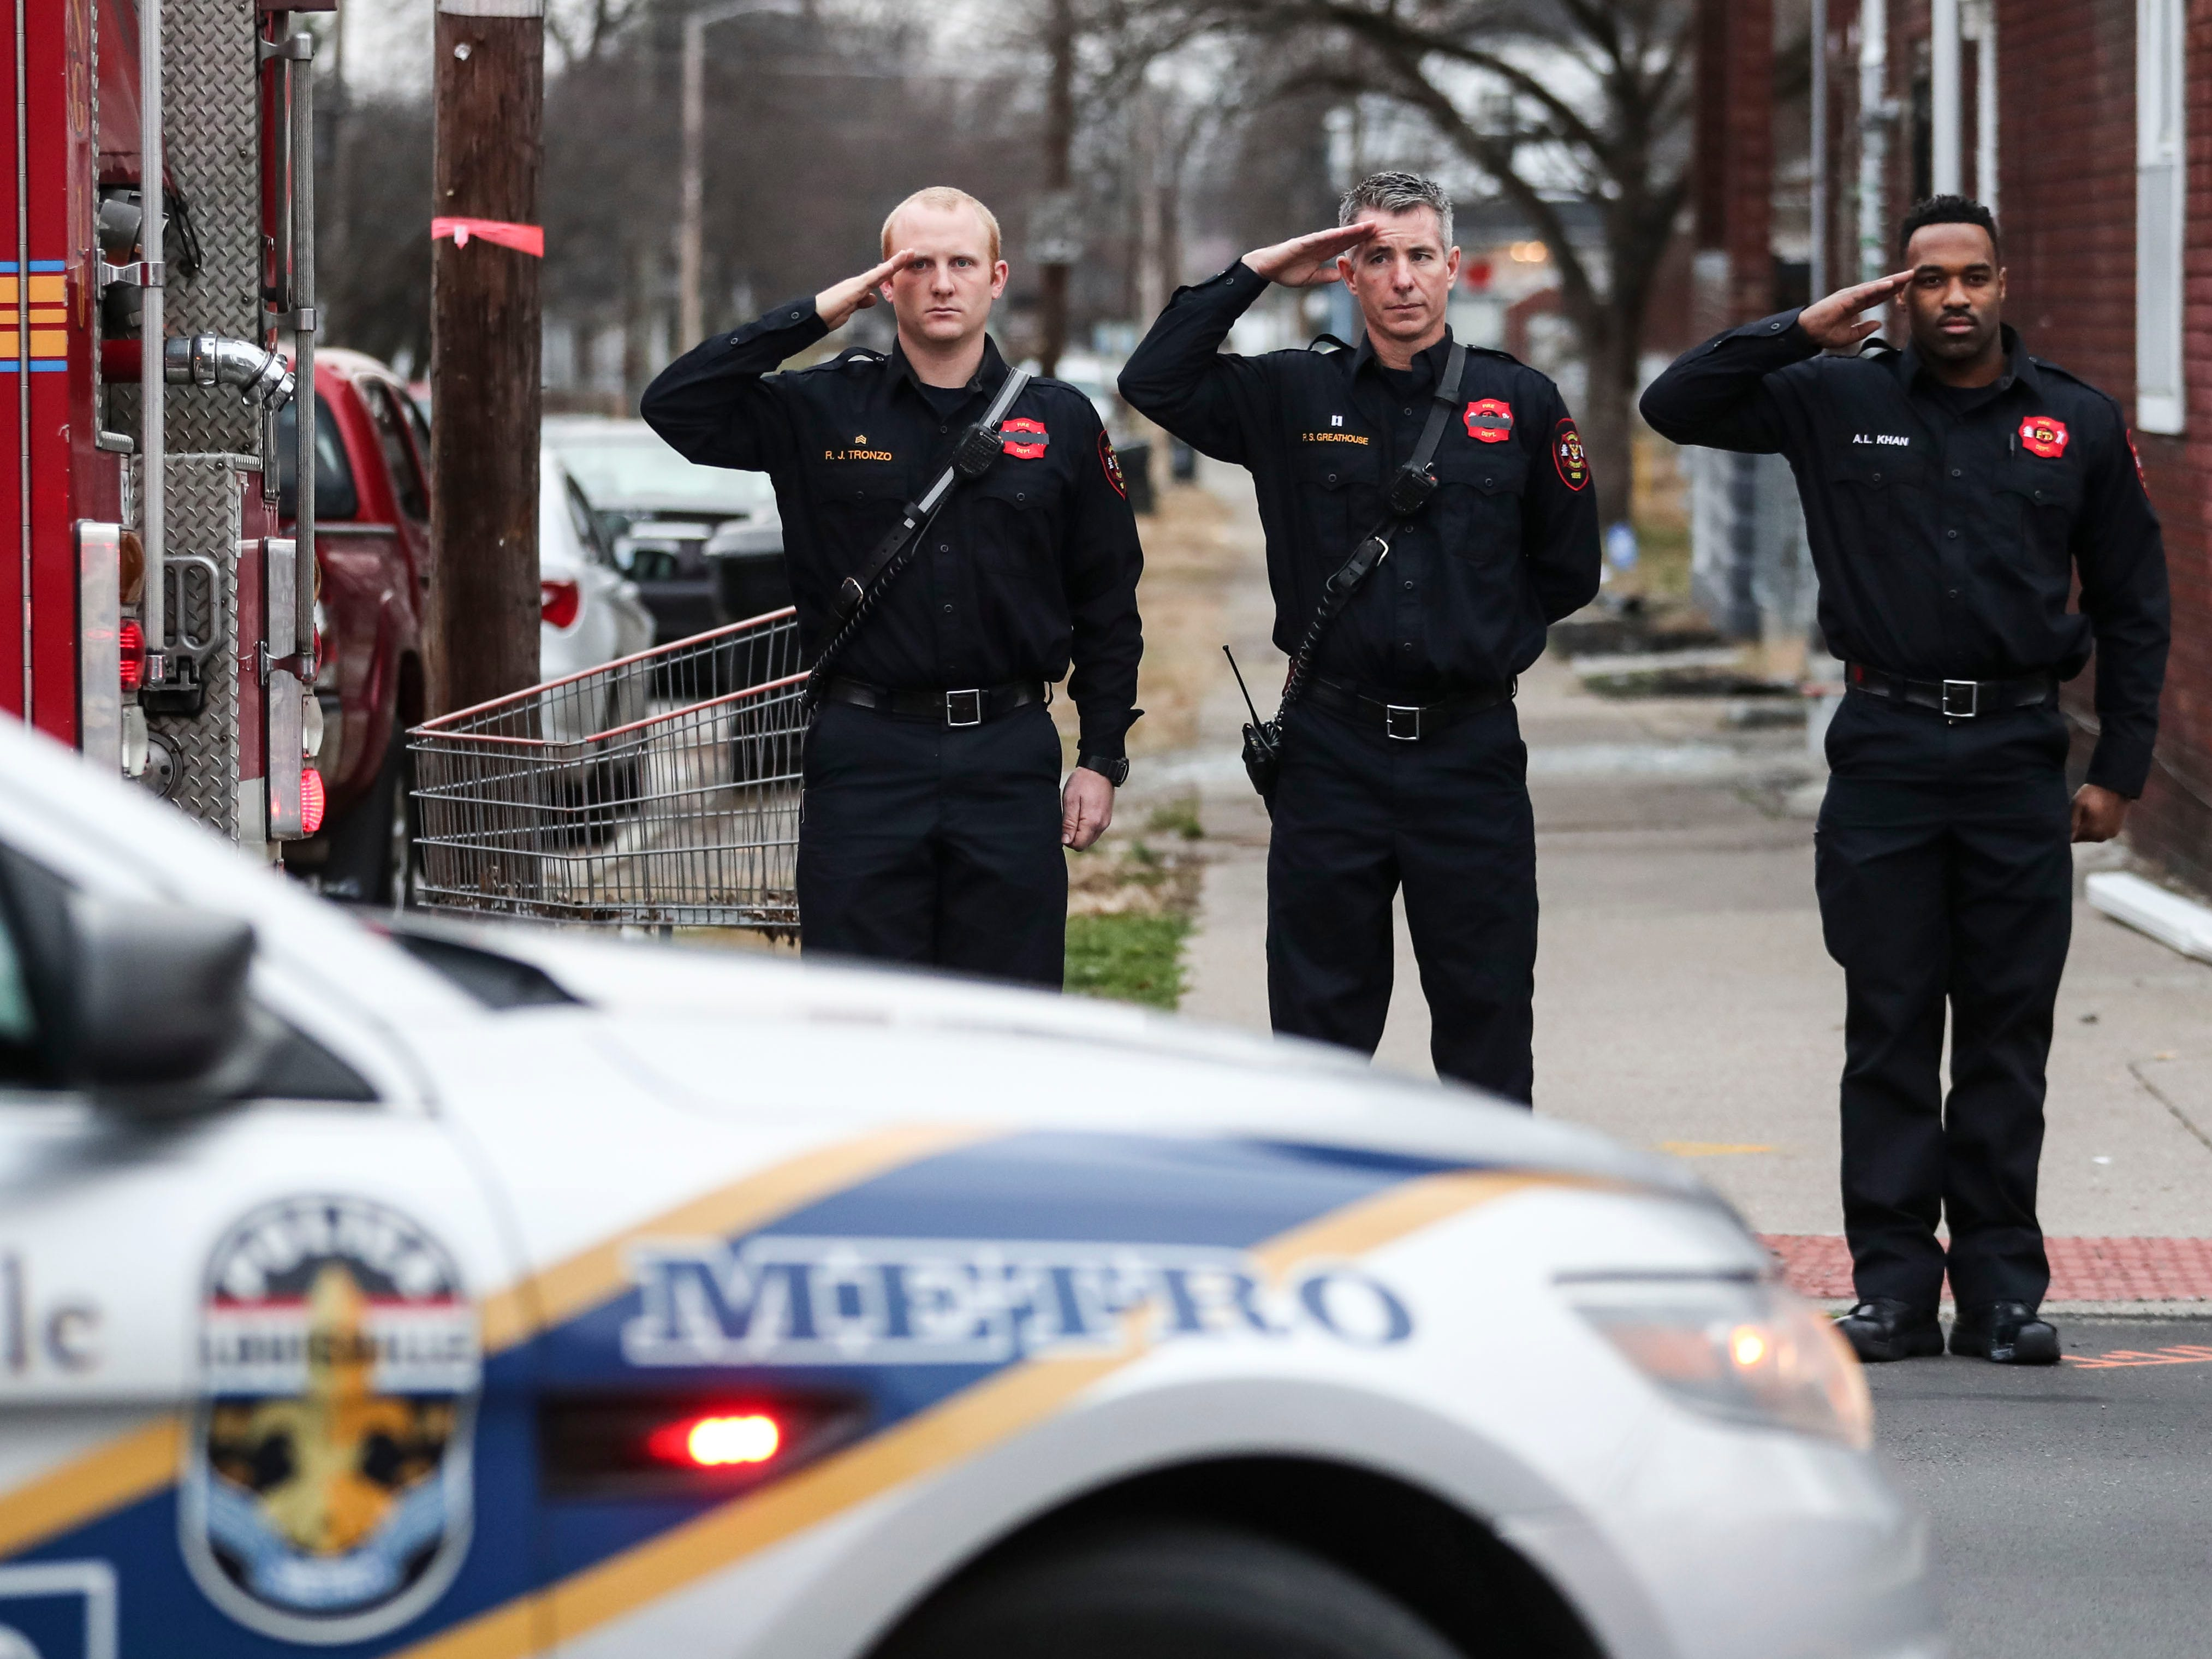 Louisville firefighters salute as the procession for LMPD Detective Deidre Mengedoht proceeds north on 4th Street as part of her last tour through the neighborhoods she patrolled as well as the Second District headquarters. Dec. 29, 2018